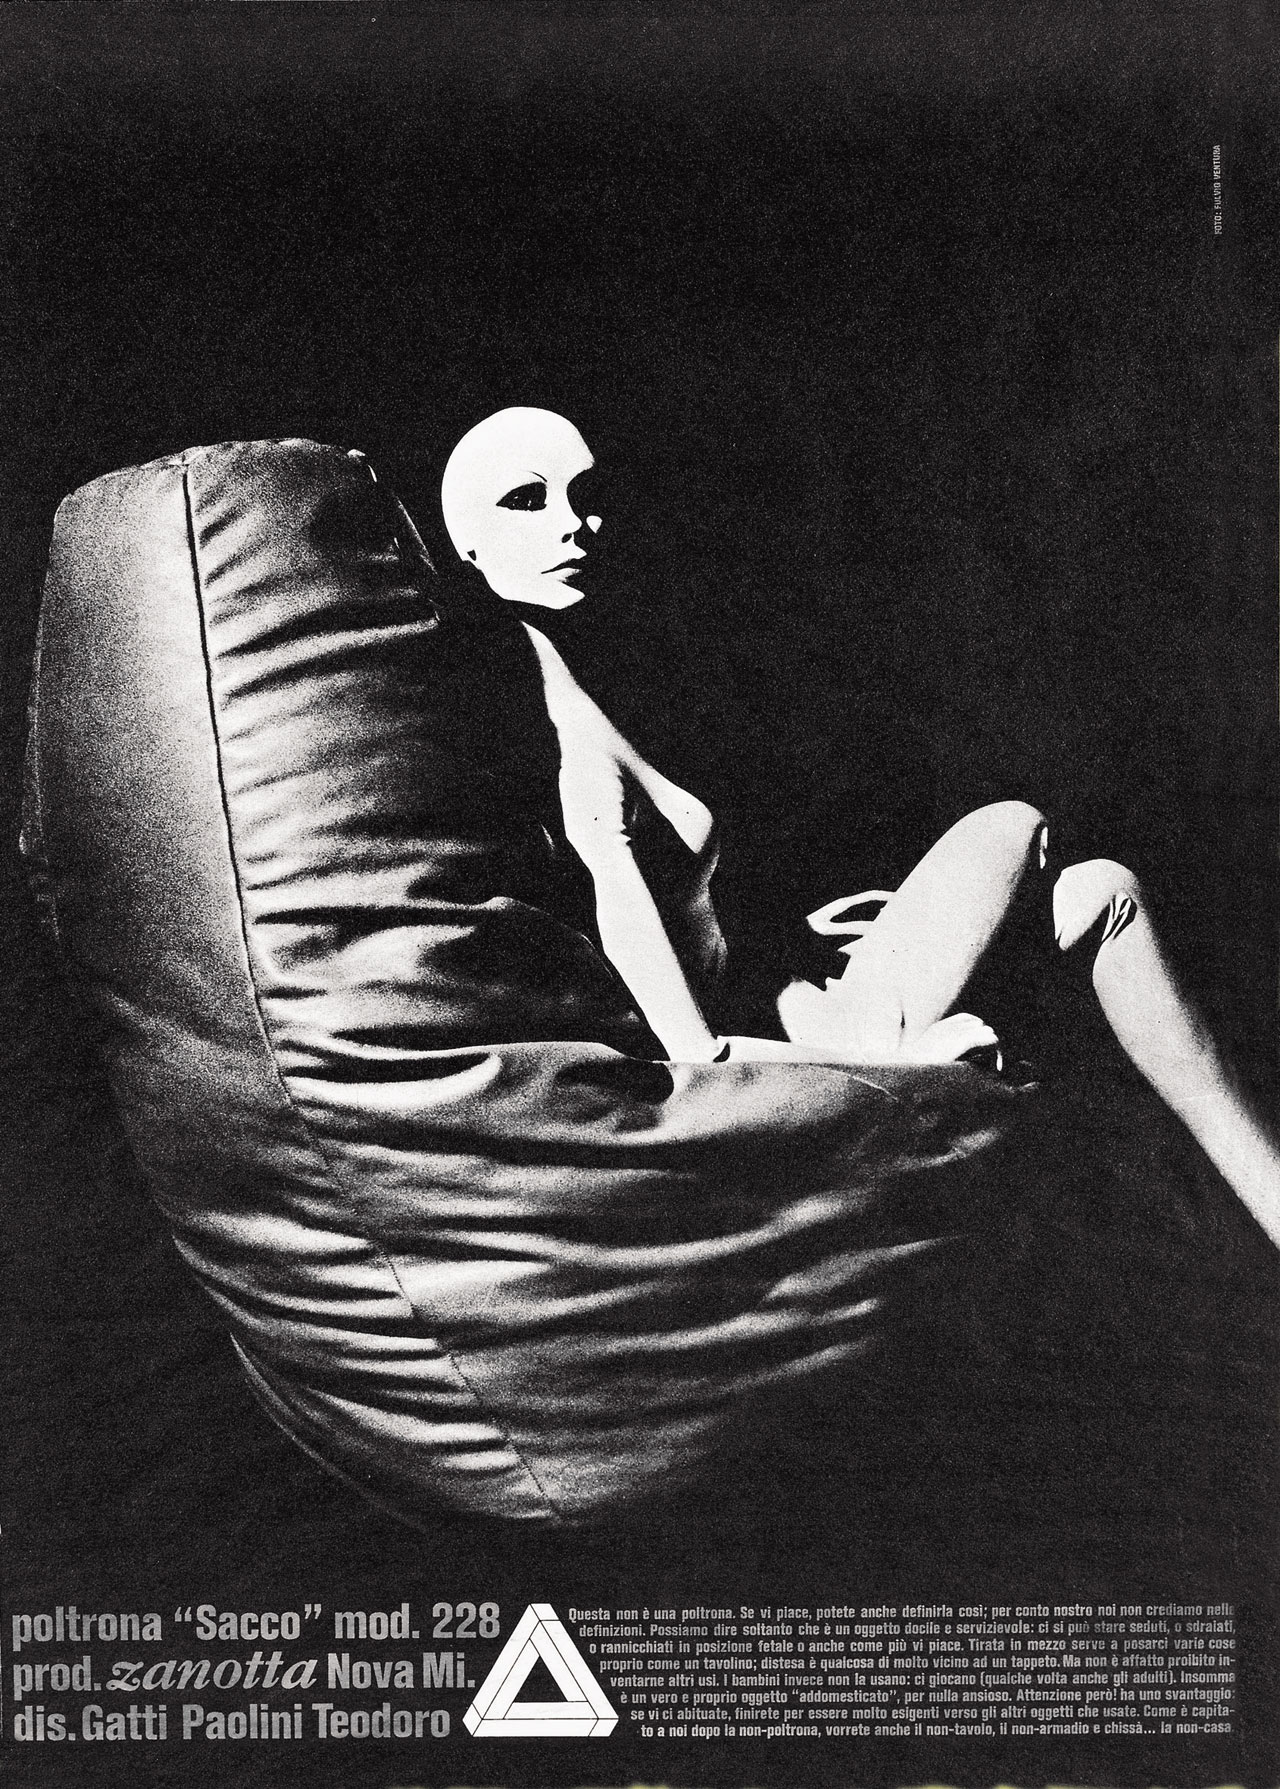 A publicity shot from the seventies that illustrates the armchair.